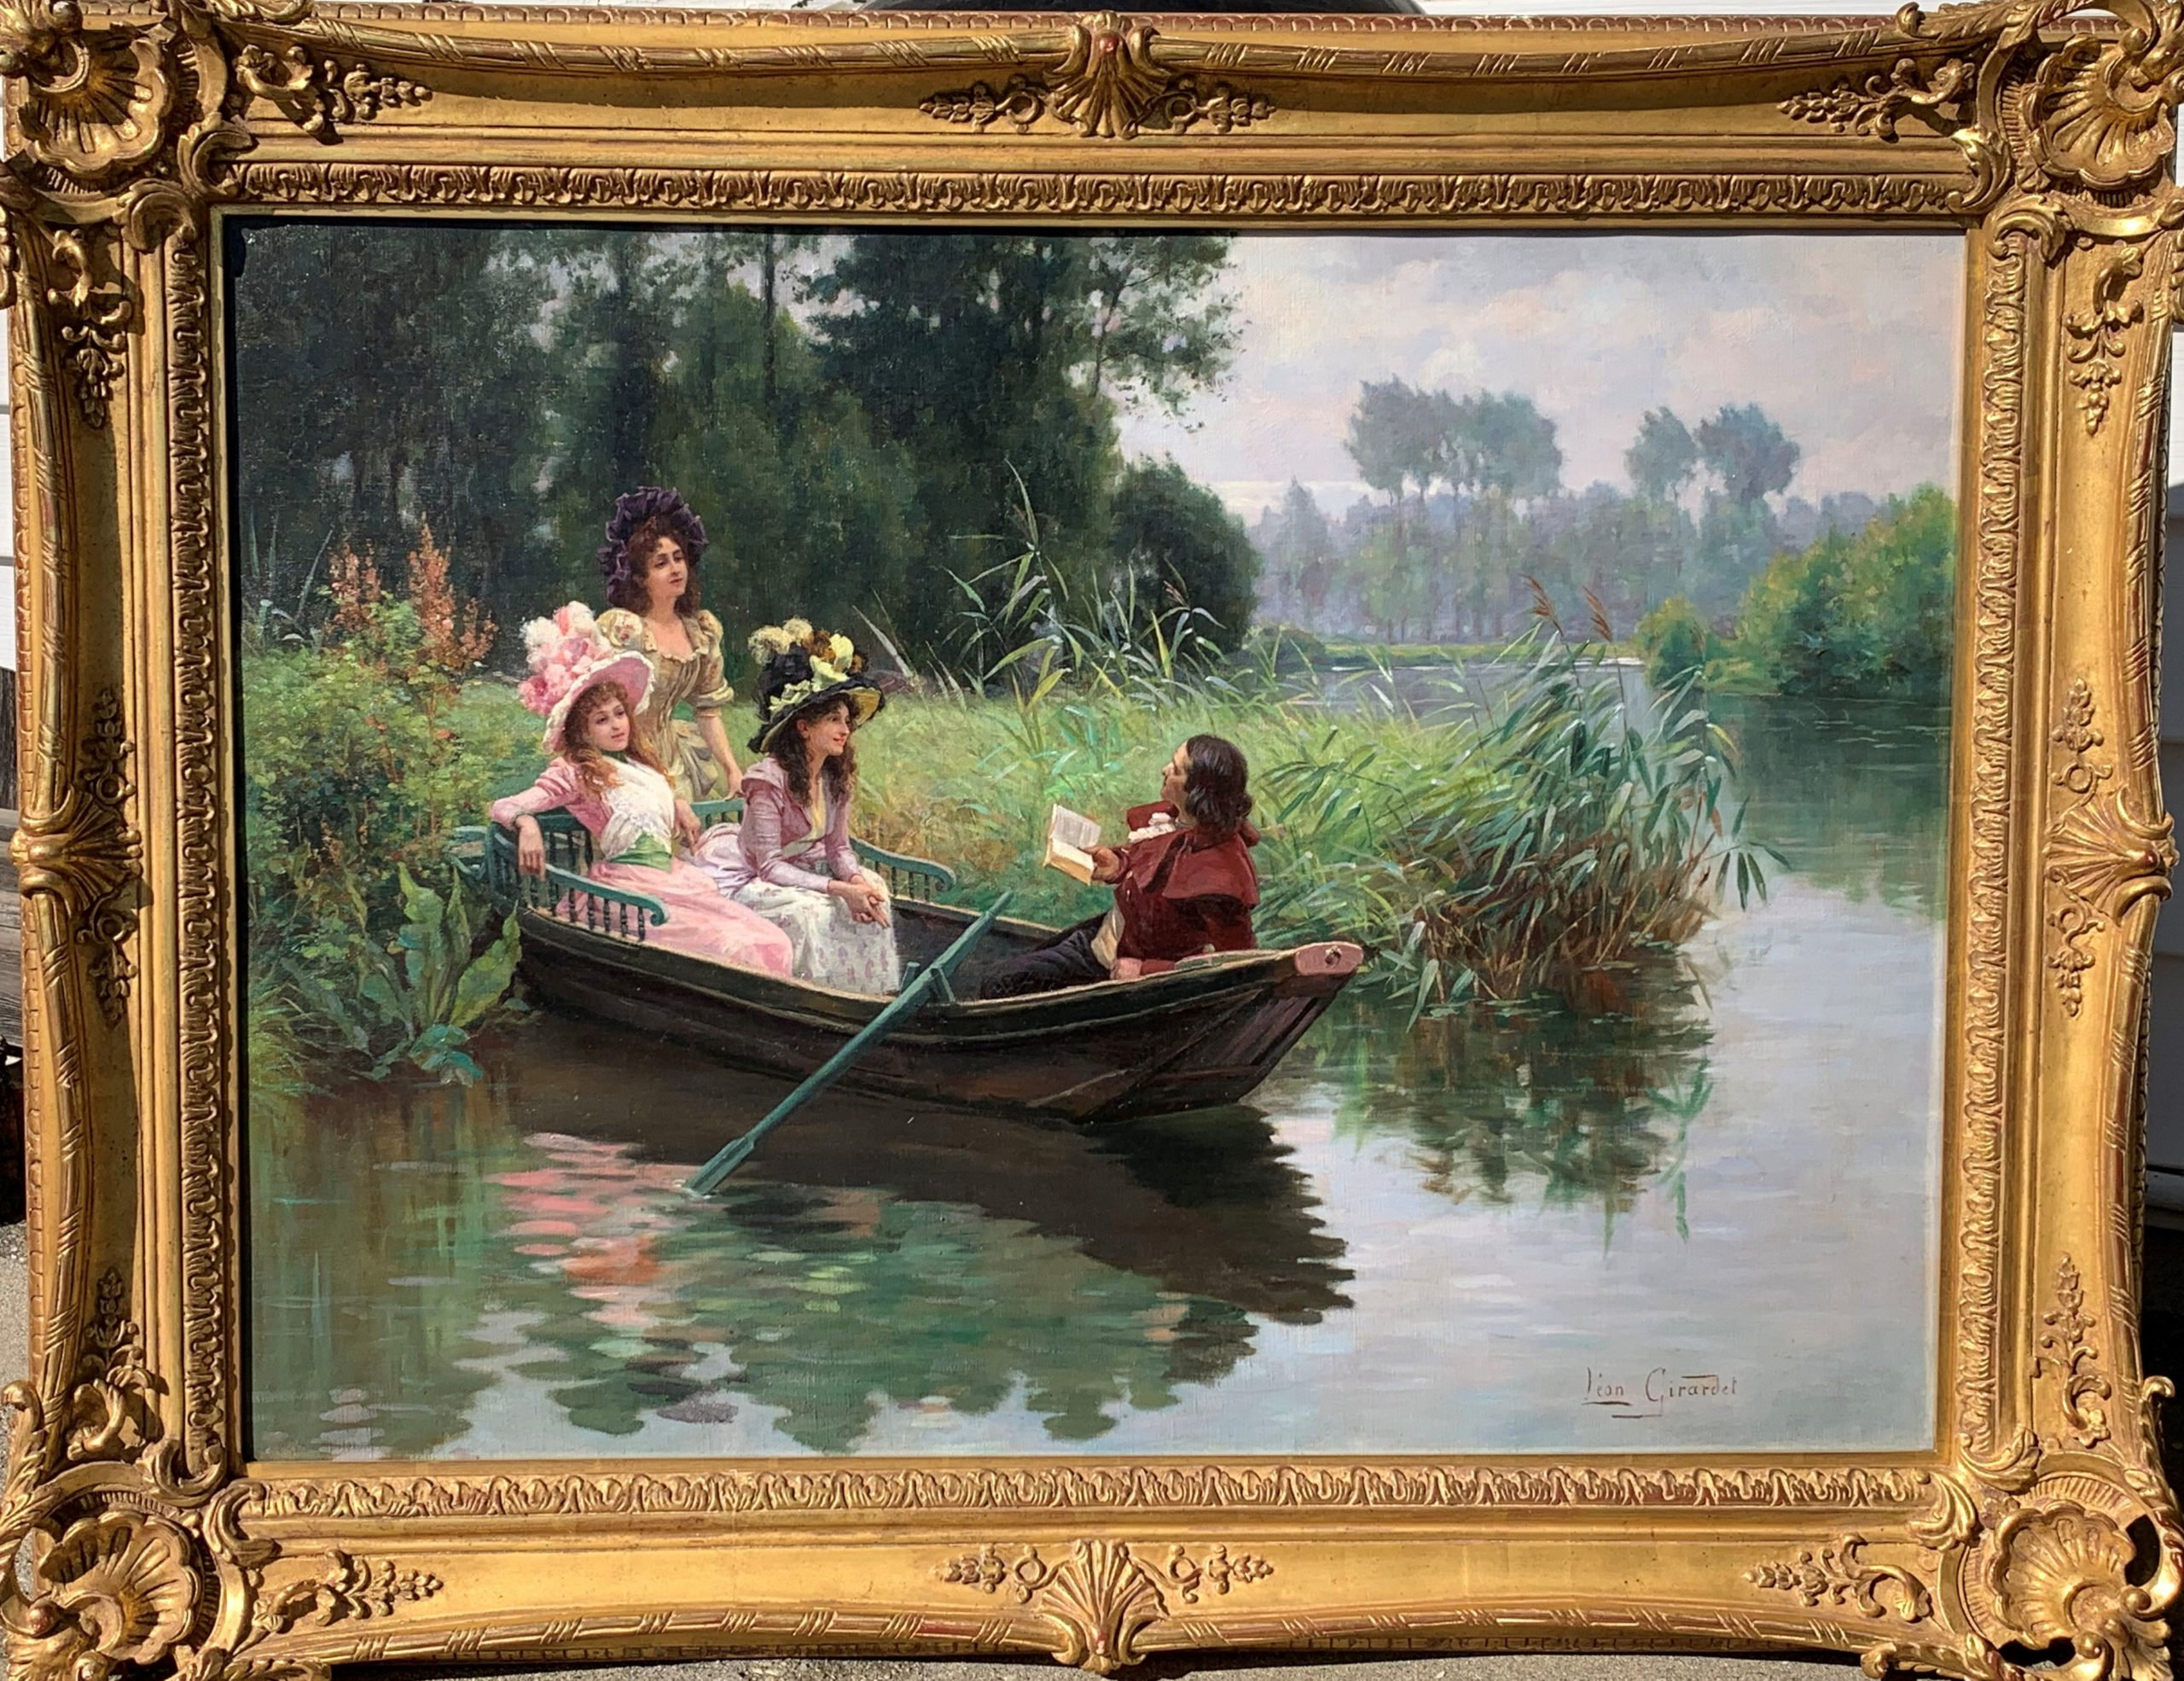 Three ladies in dresses sit aboard a small rowing boat on a lake with a gentleman reading from a book by Leon Girardet